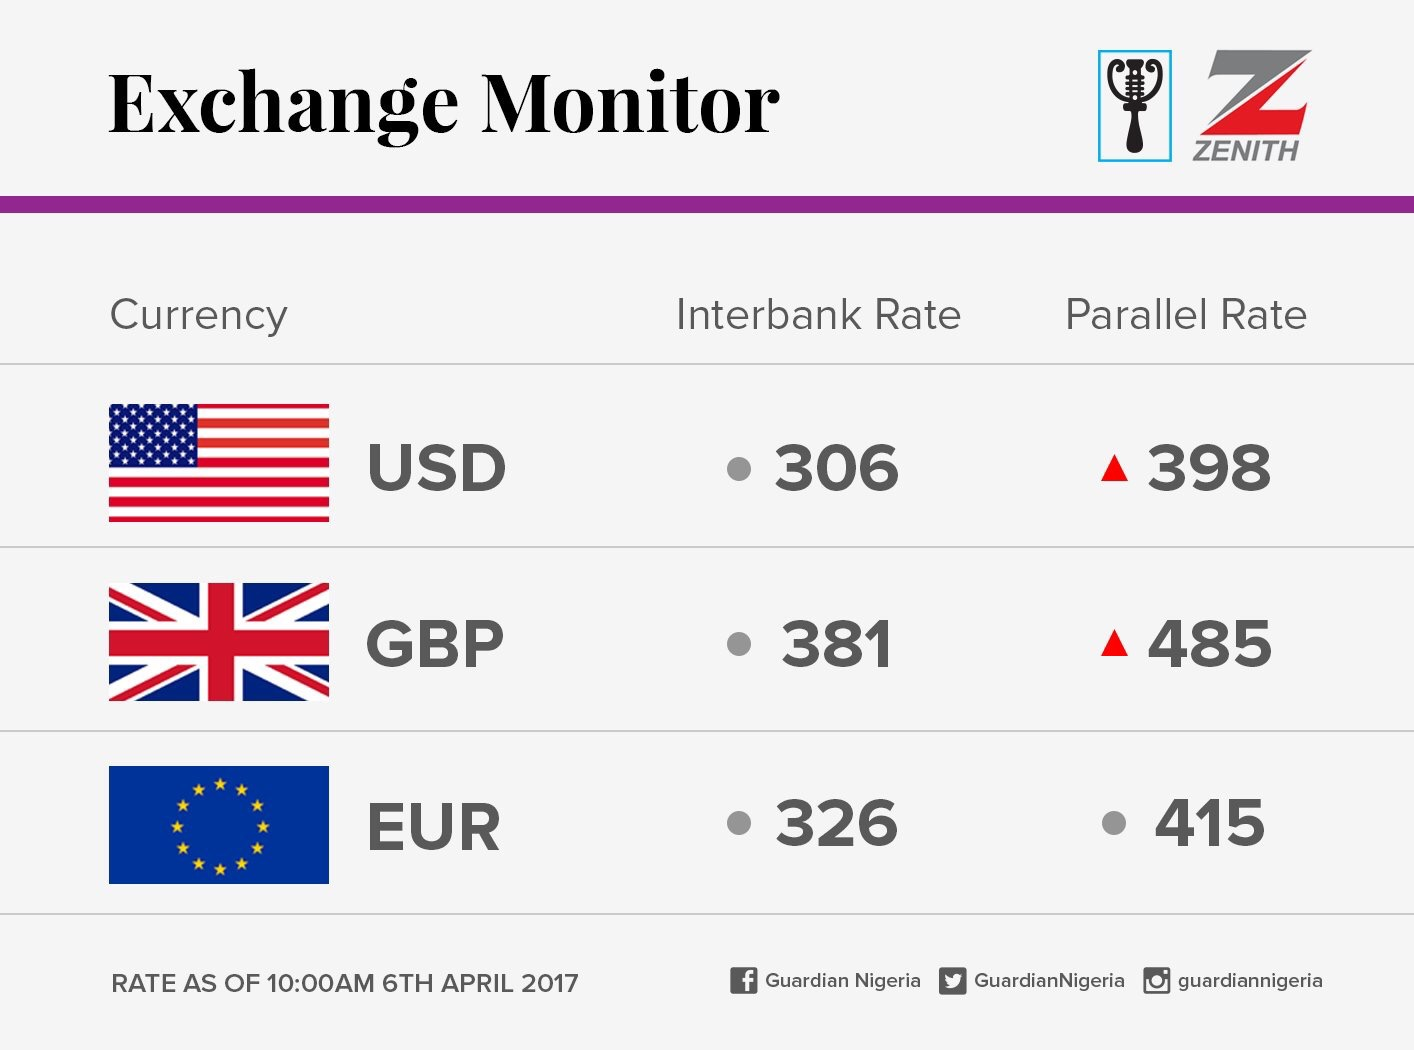 Exchange Rate For 6th April 2017